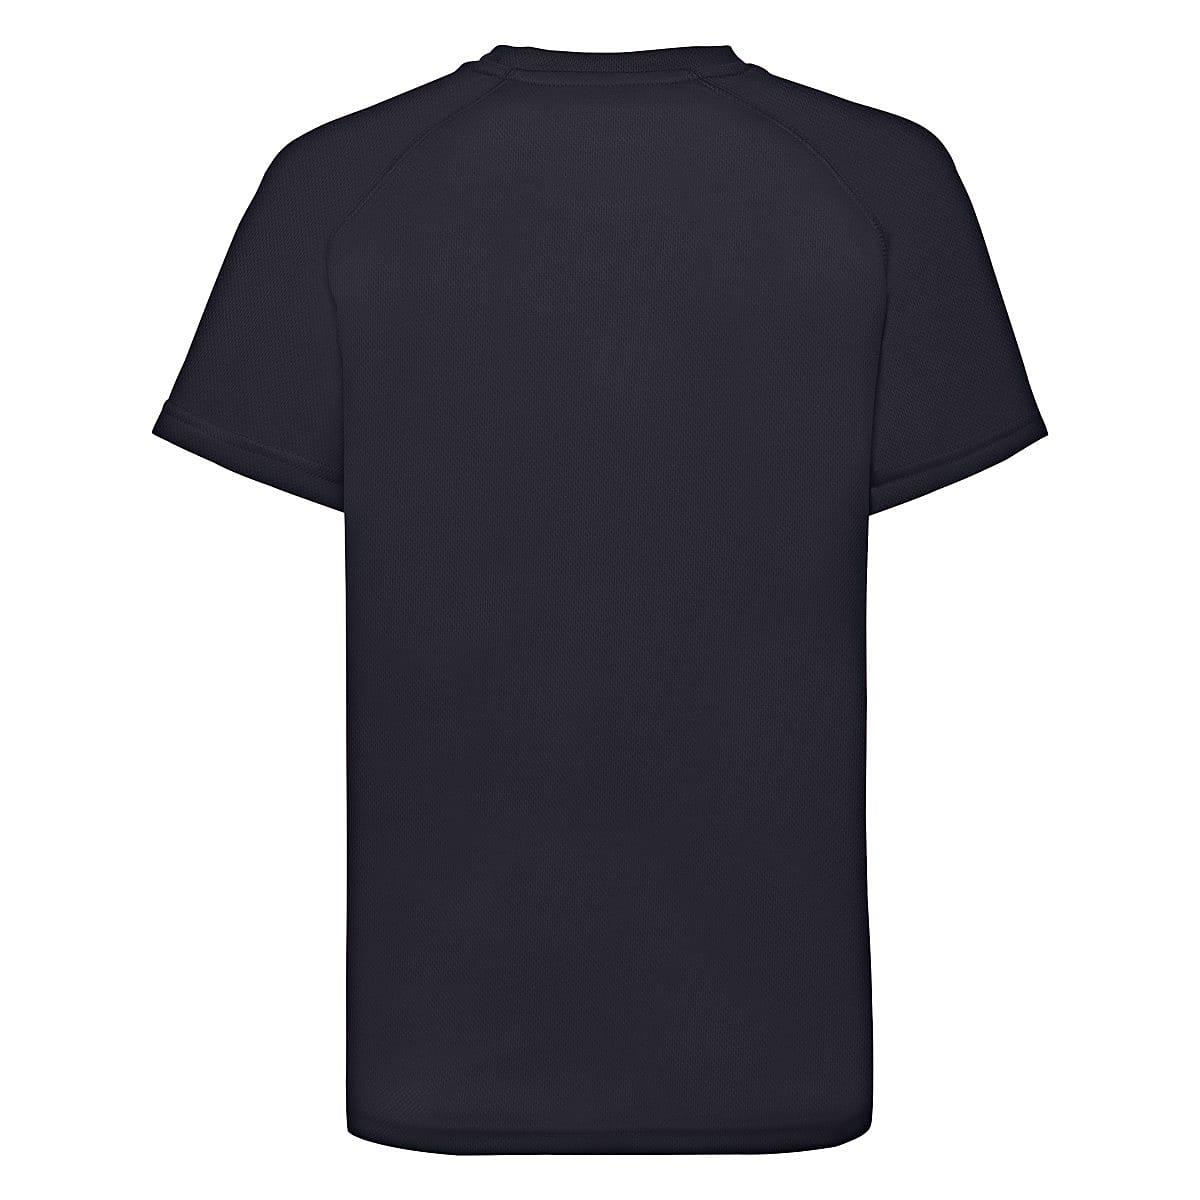 Fruit Of The Loom Childrens Kids Performance T-Shirt in Deep Navy (Product Code: 61013)